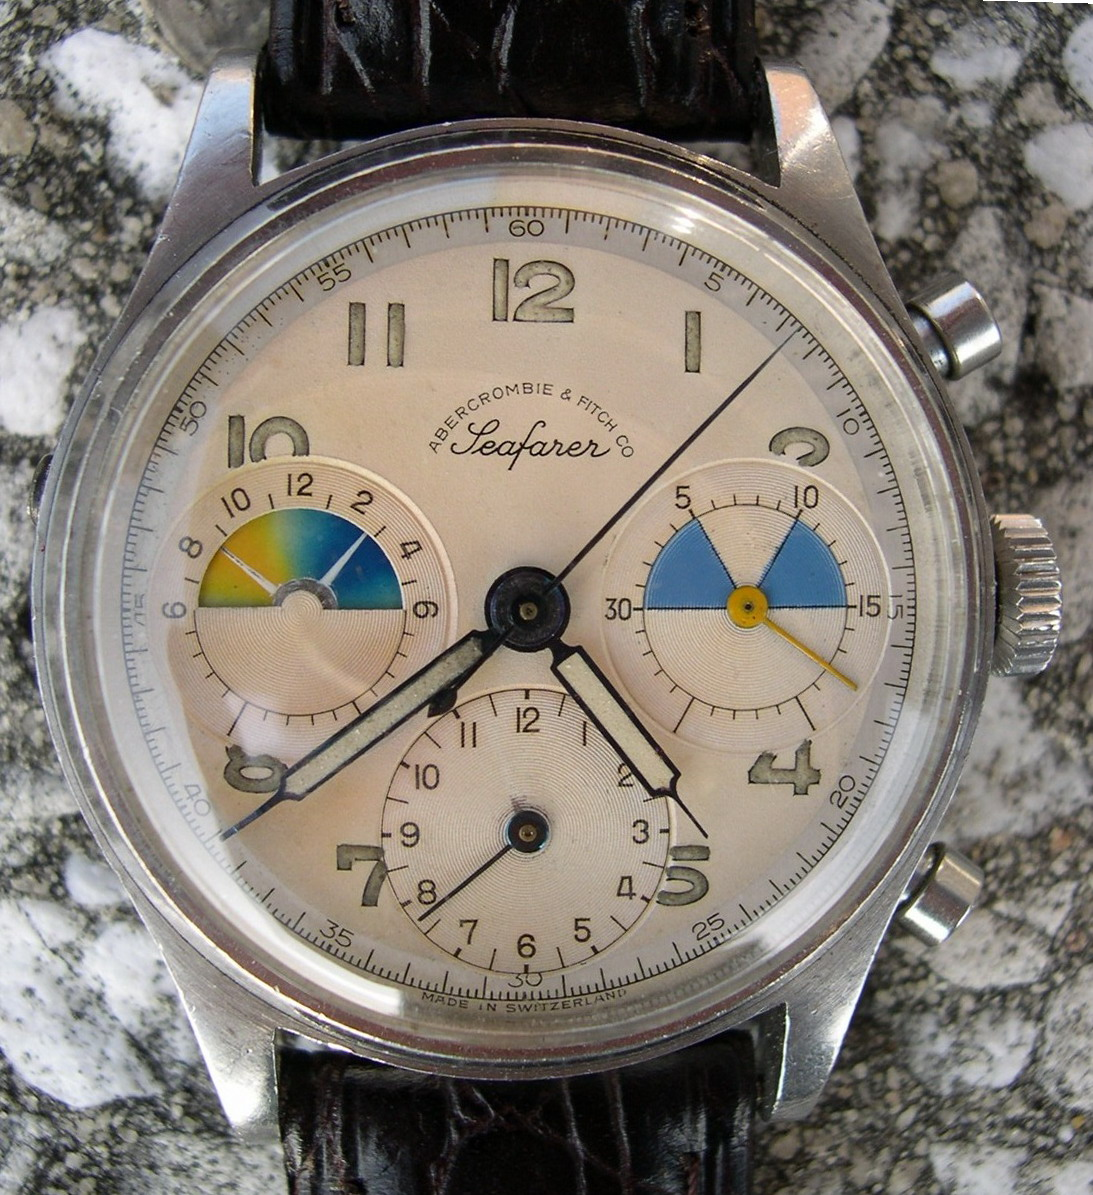 Abercrombie & Fitch Seafarer, Reference 346 Case